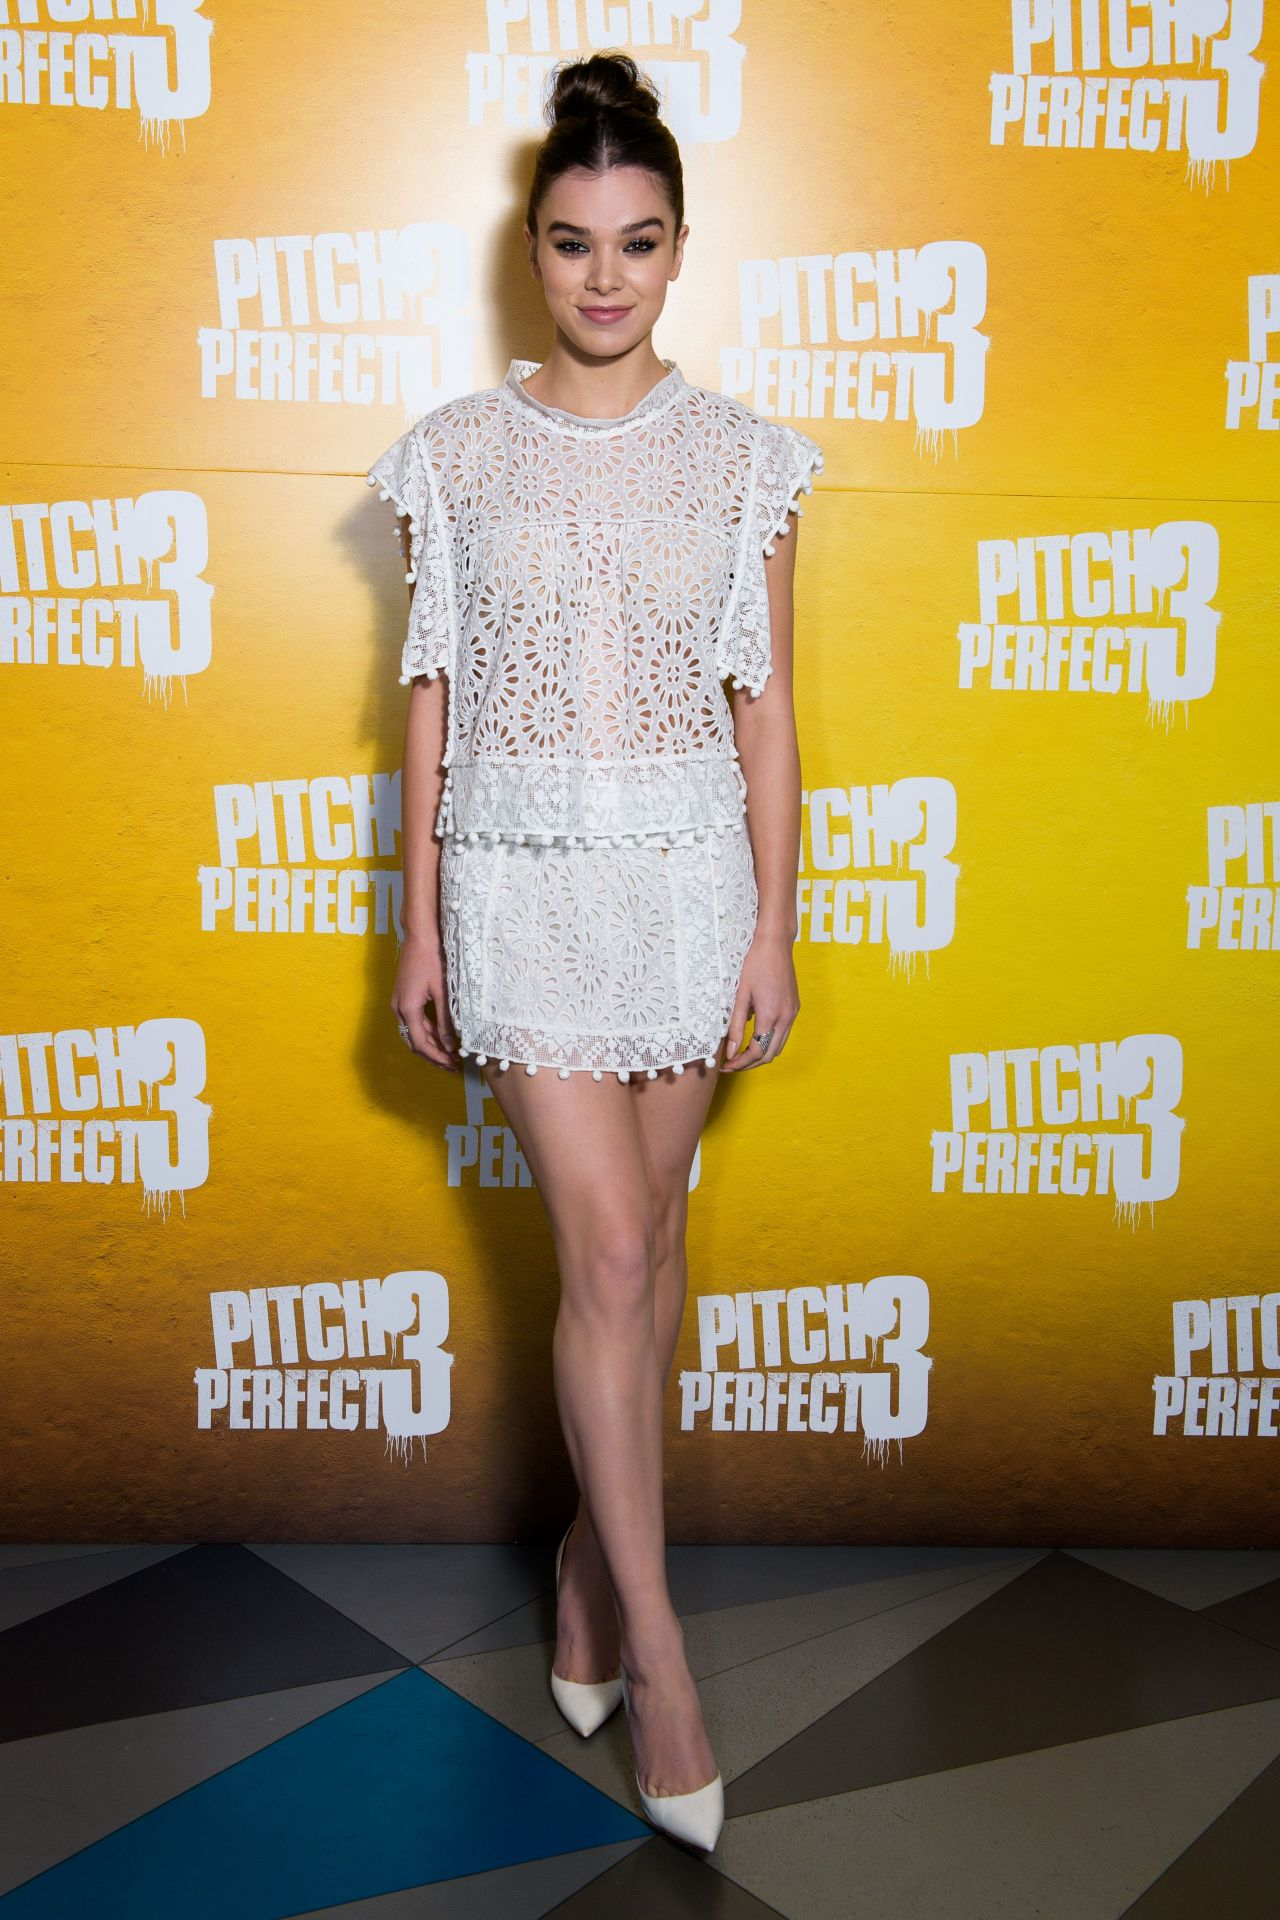 http://celebmafia.com/wp-content/uploads/2017/12/hailee-steinfeld-pitch-perfect-3-special-screening-in-london-1.jpg